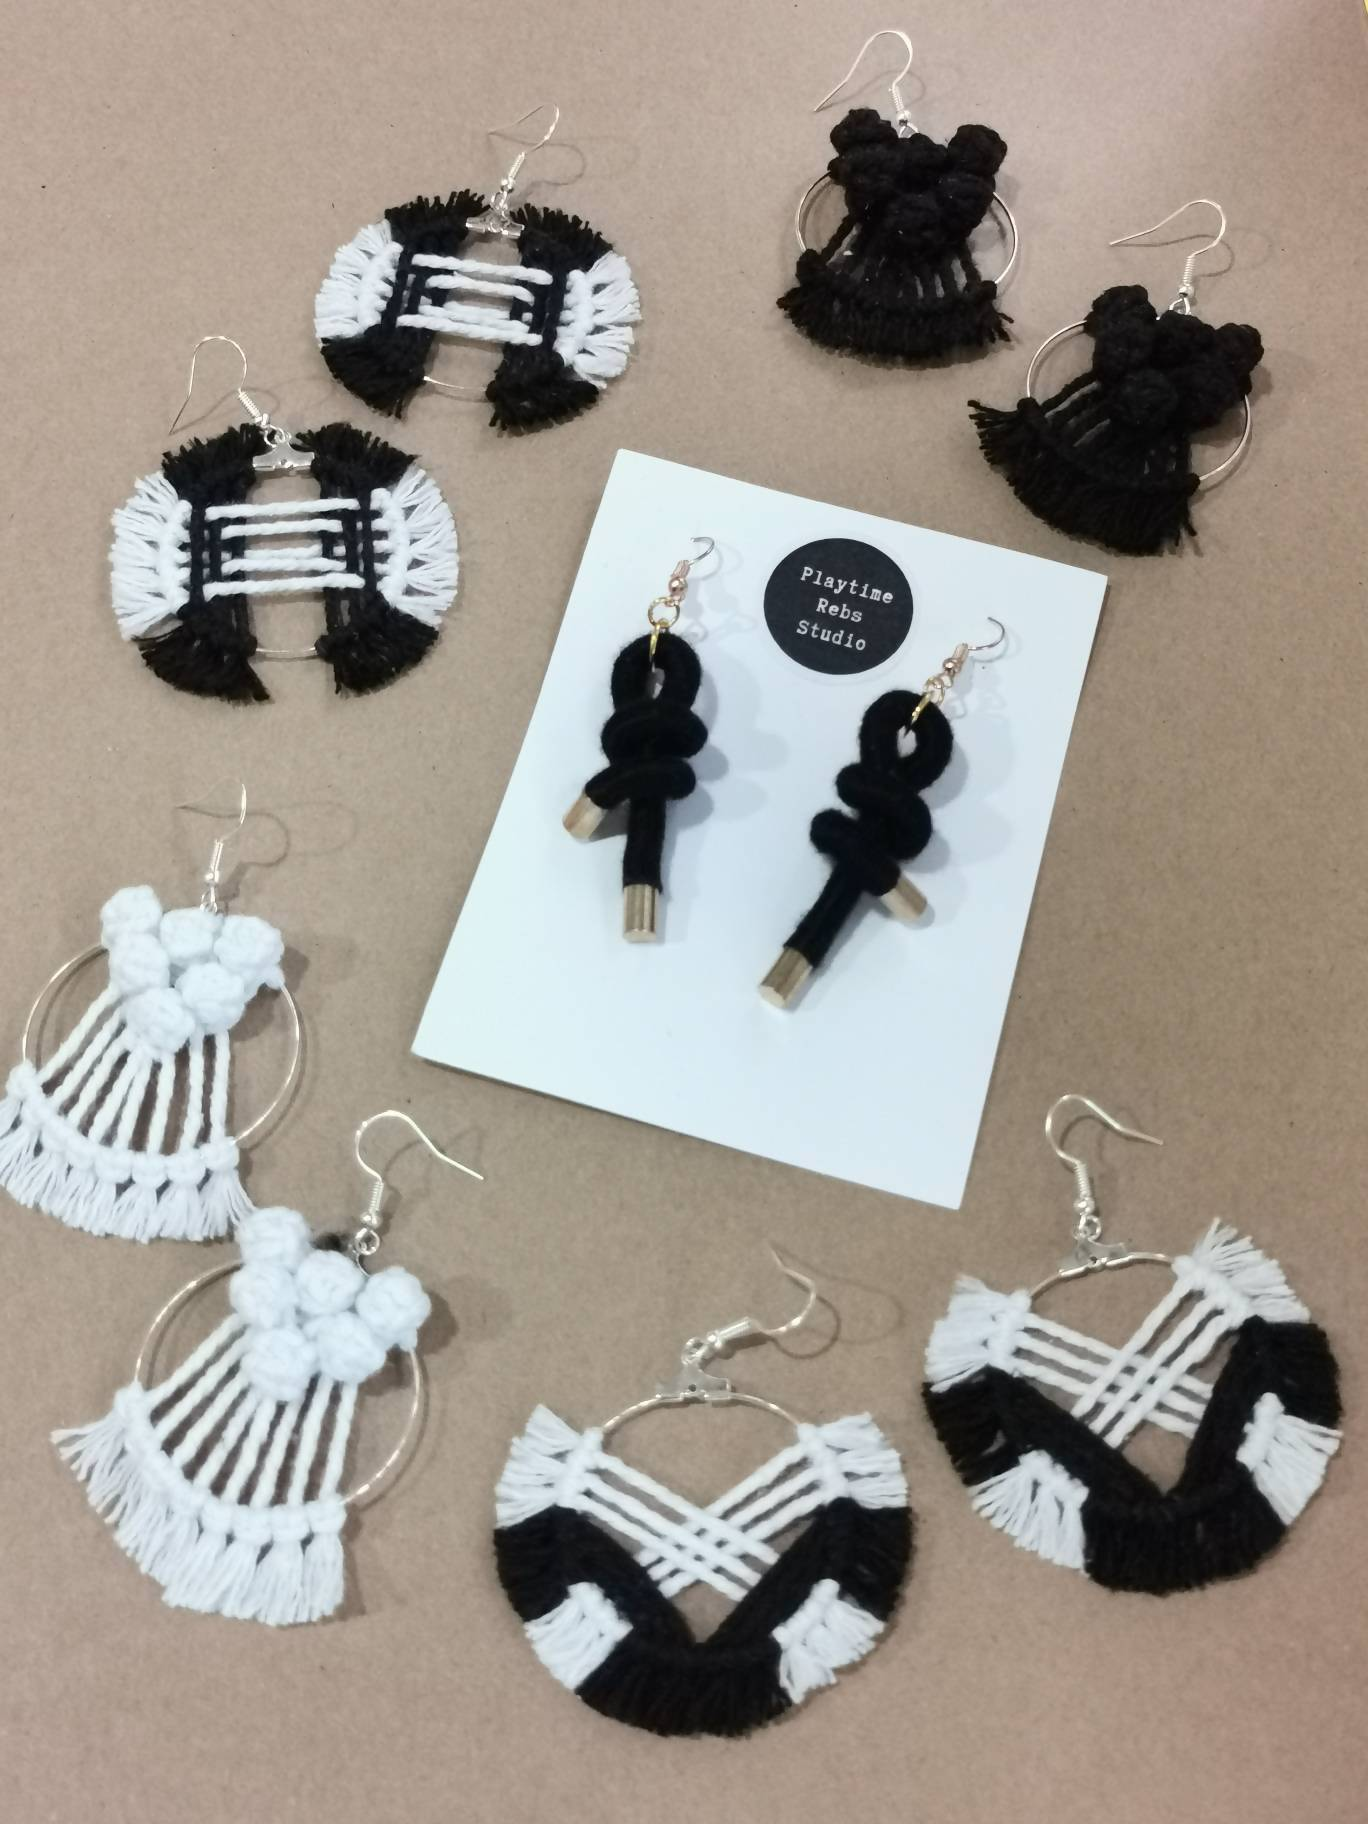 Intersect Macrame Hoop Earrings - Gray & White - Earrings - Playtime Rebs Studio - Naiise